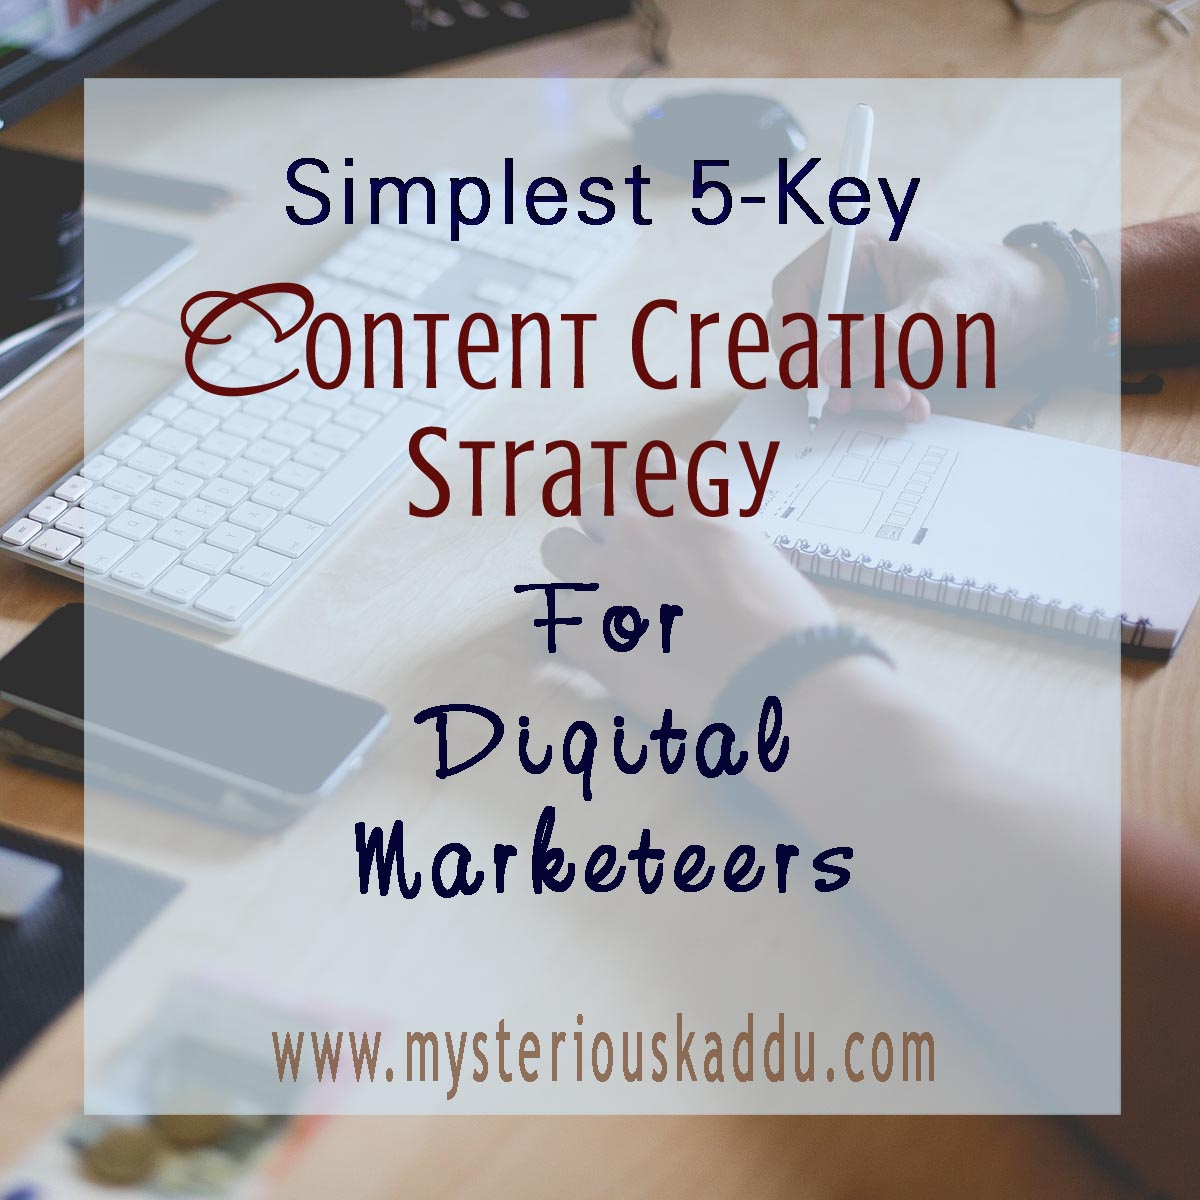 The Simplest 5-Key Content Creation Strategy for Digital Marketeers